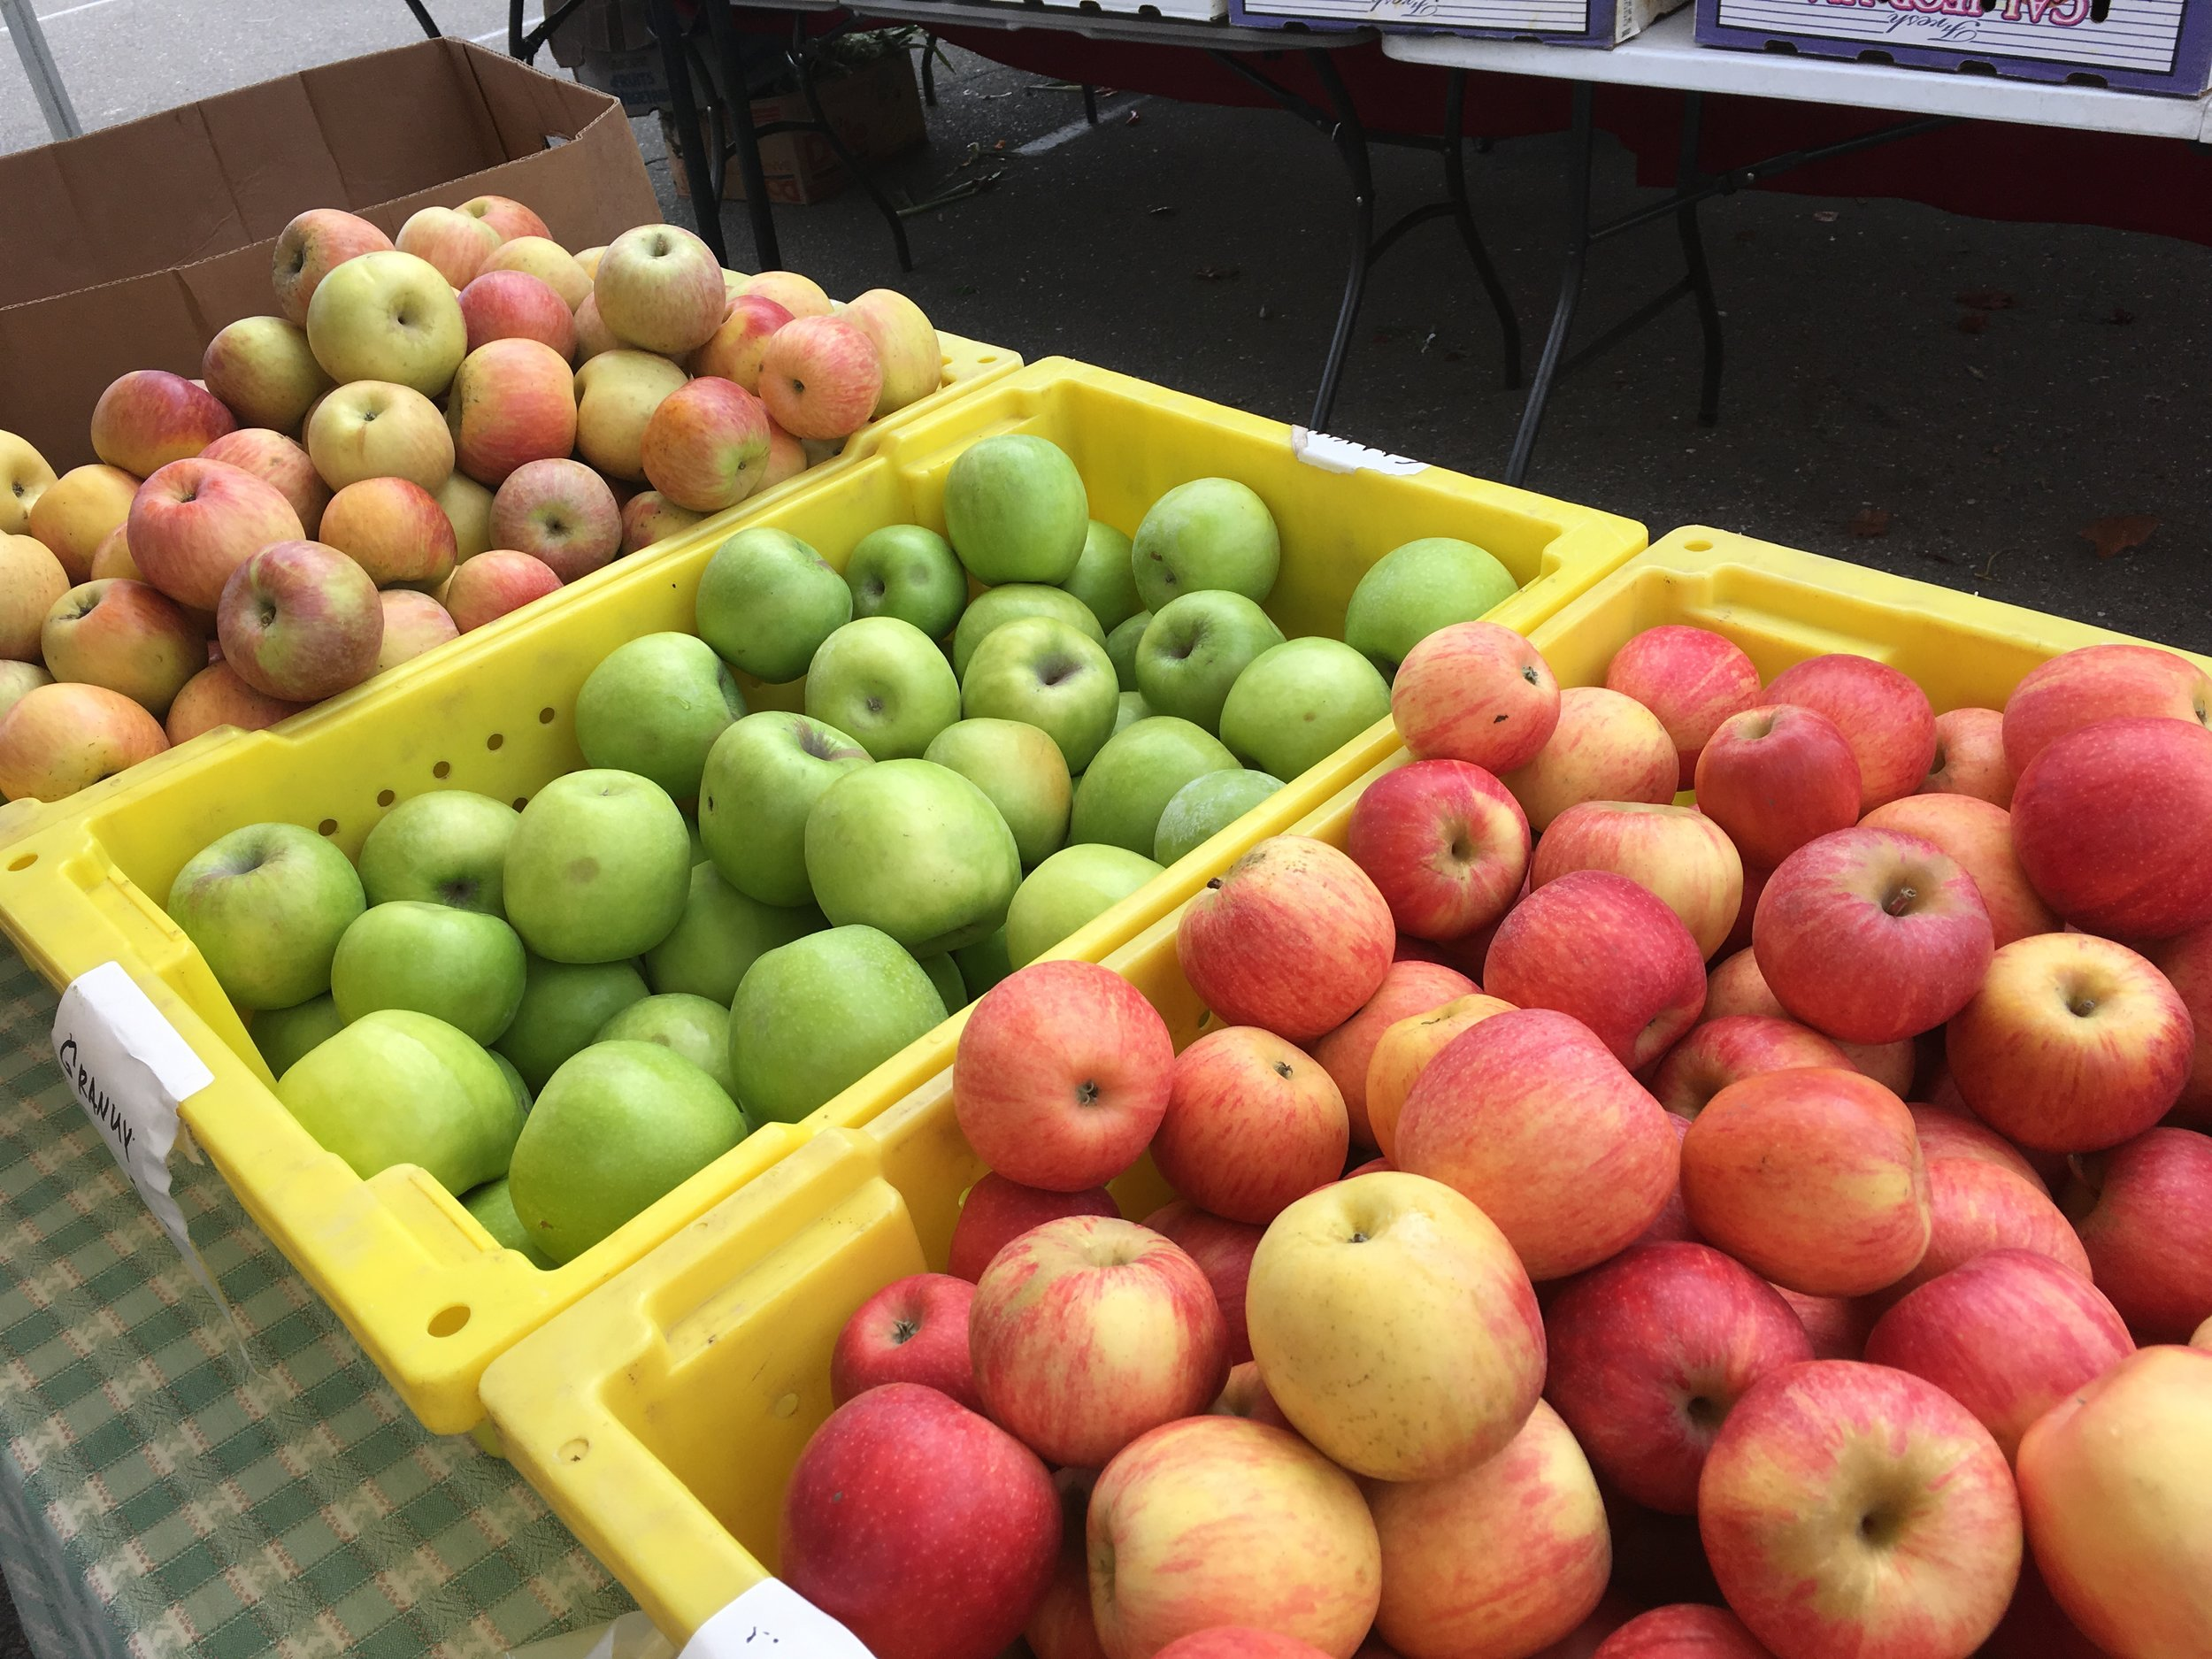 Apples, sweet, simple and healthy.